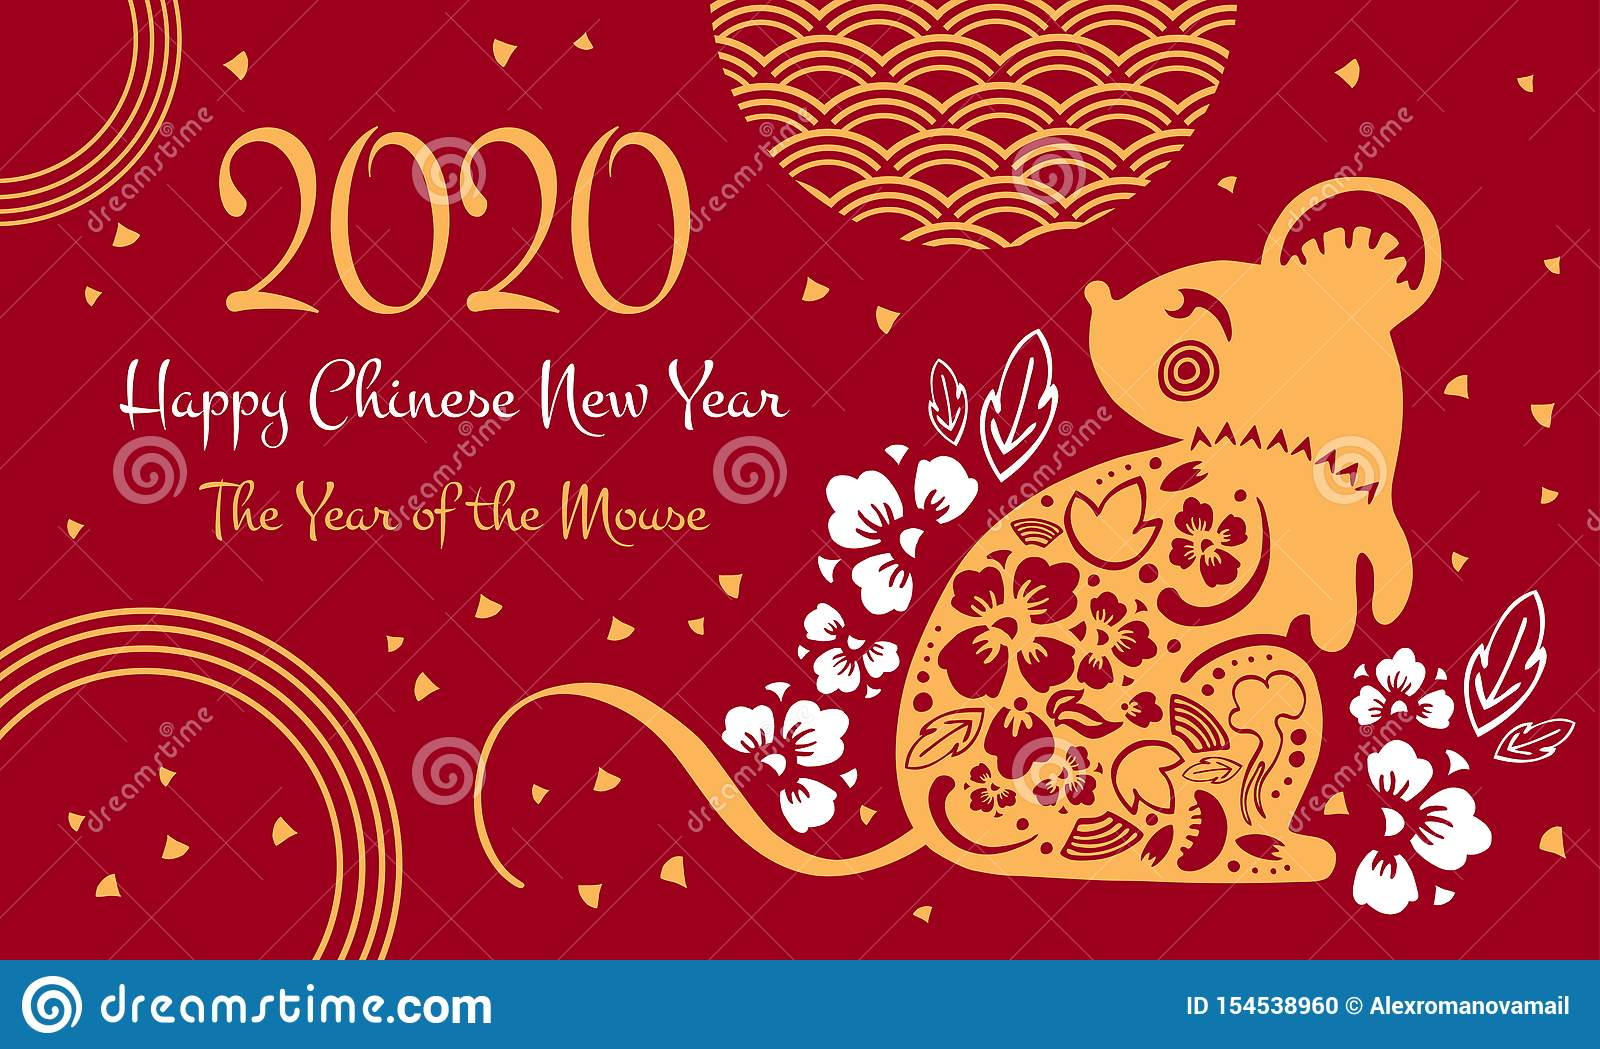 Chinese New Year 2020 Print Template Vector Papercut Silhouette Illustration With Mouse And Decorative Elements Stock Vector Illustration Of Design Festival 154538960